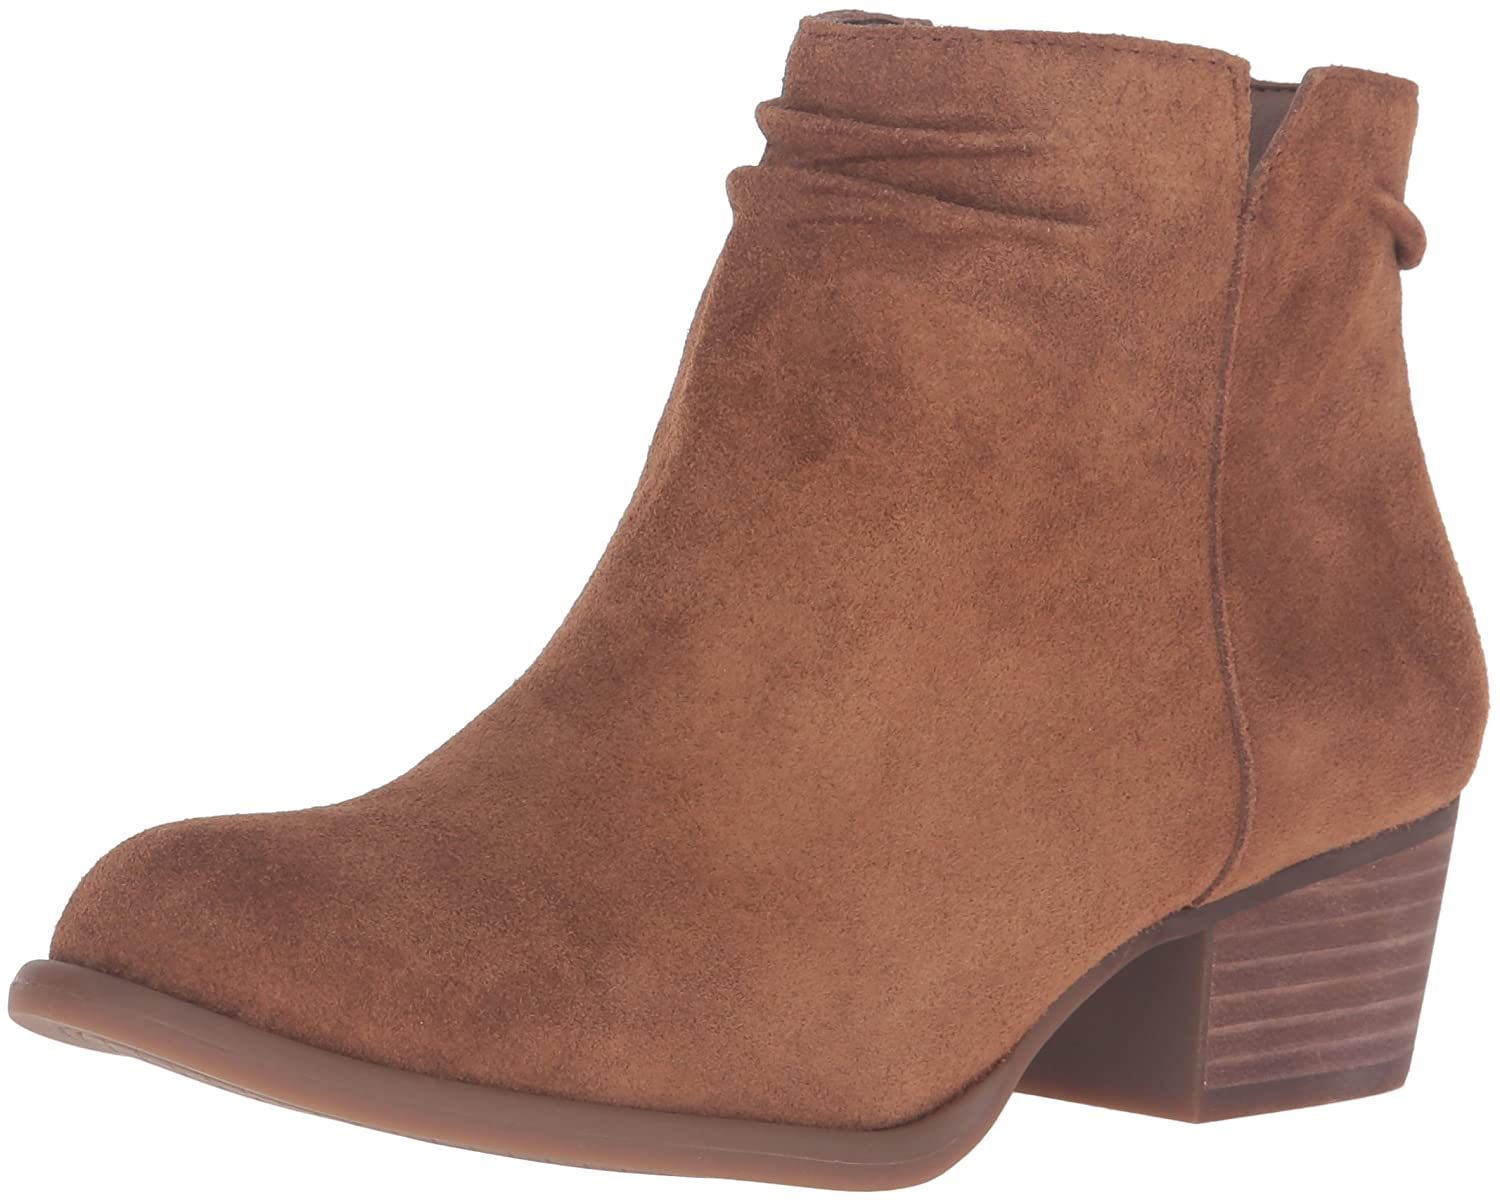 Jessica Simpson Women's Dallyn Ankle Bootie B01HQ02C4S 6.5 B(M) US|Canela Brown